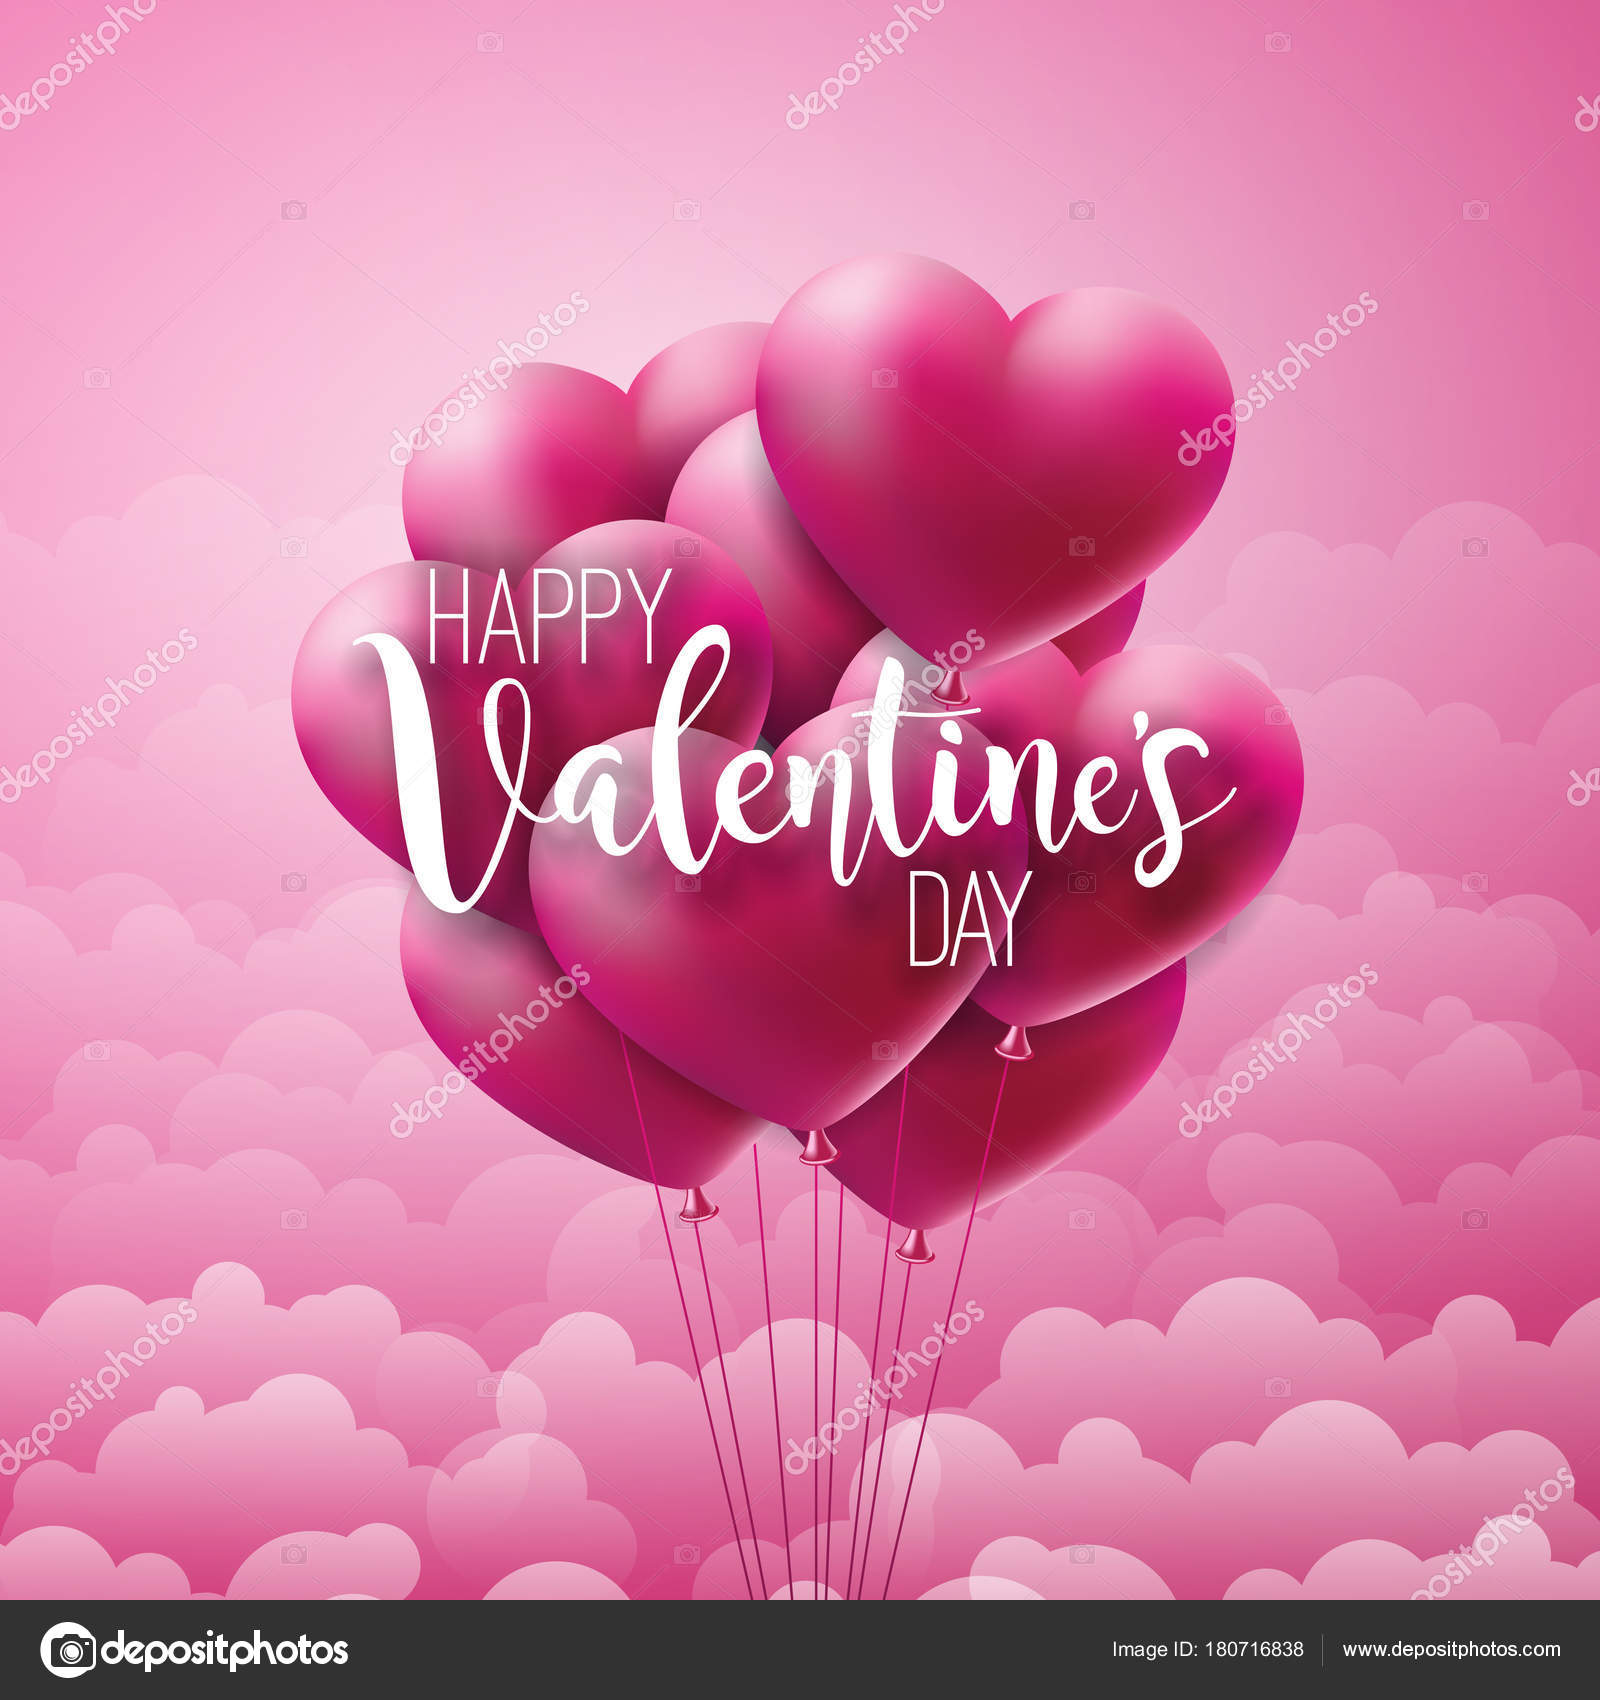 Happy valentines day design with red balloon heart and typography happy valentines day design with red balloon heart and typography letter on pink cloud background stopboris Image collections